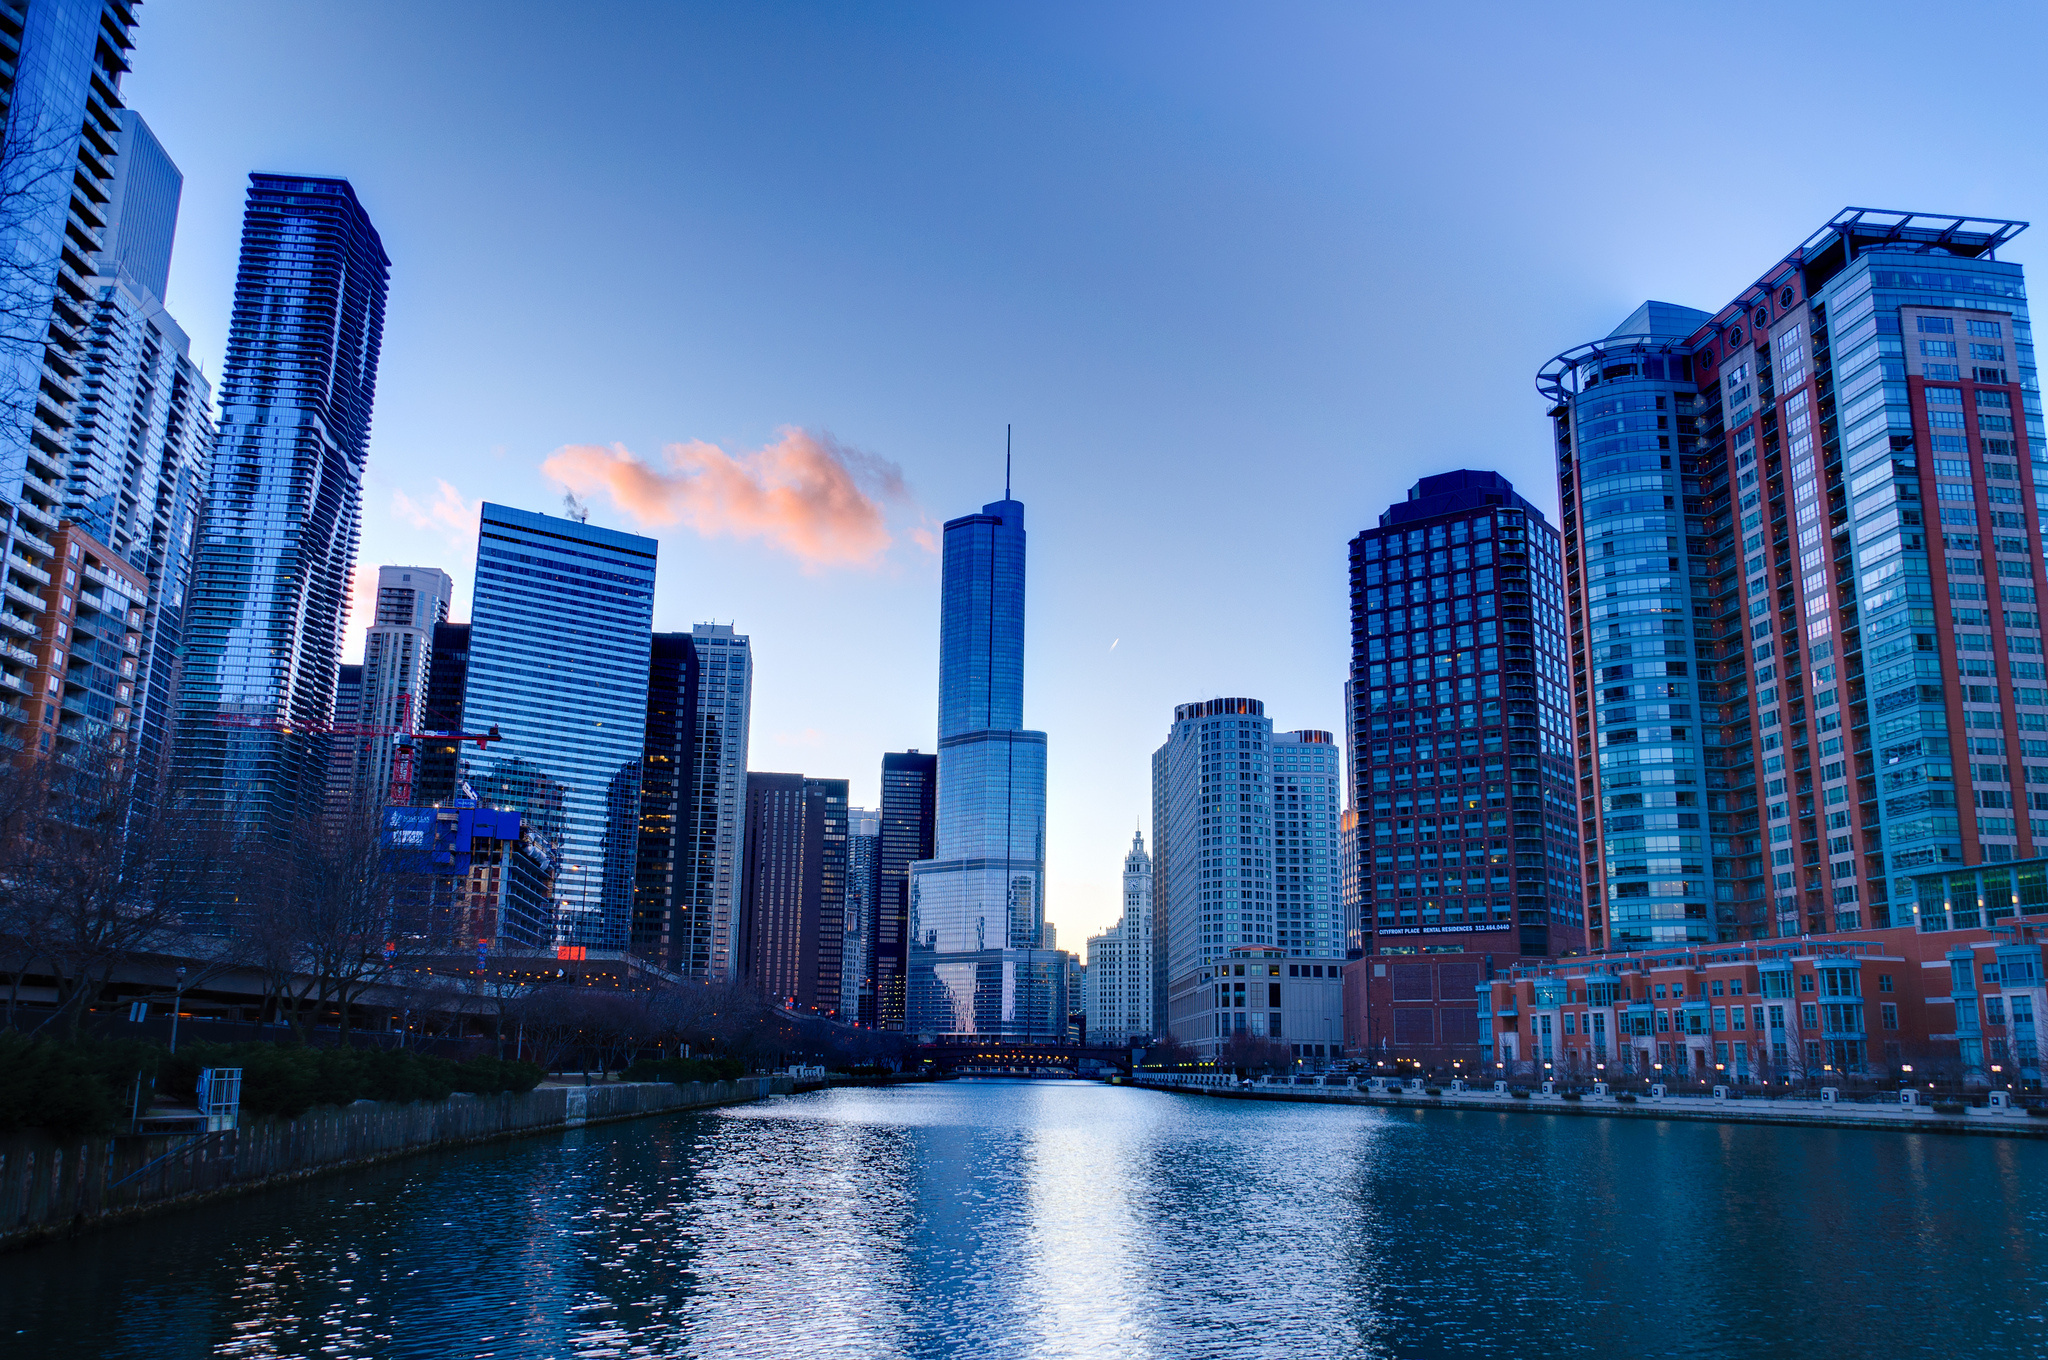 229 Chicago HD Wallpapers Background Images 2048x1360